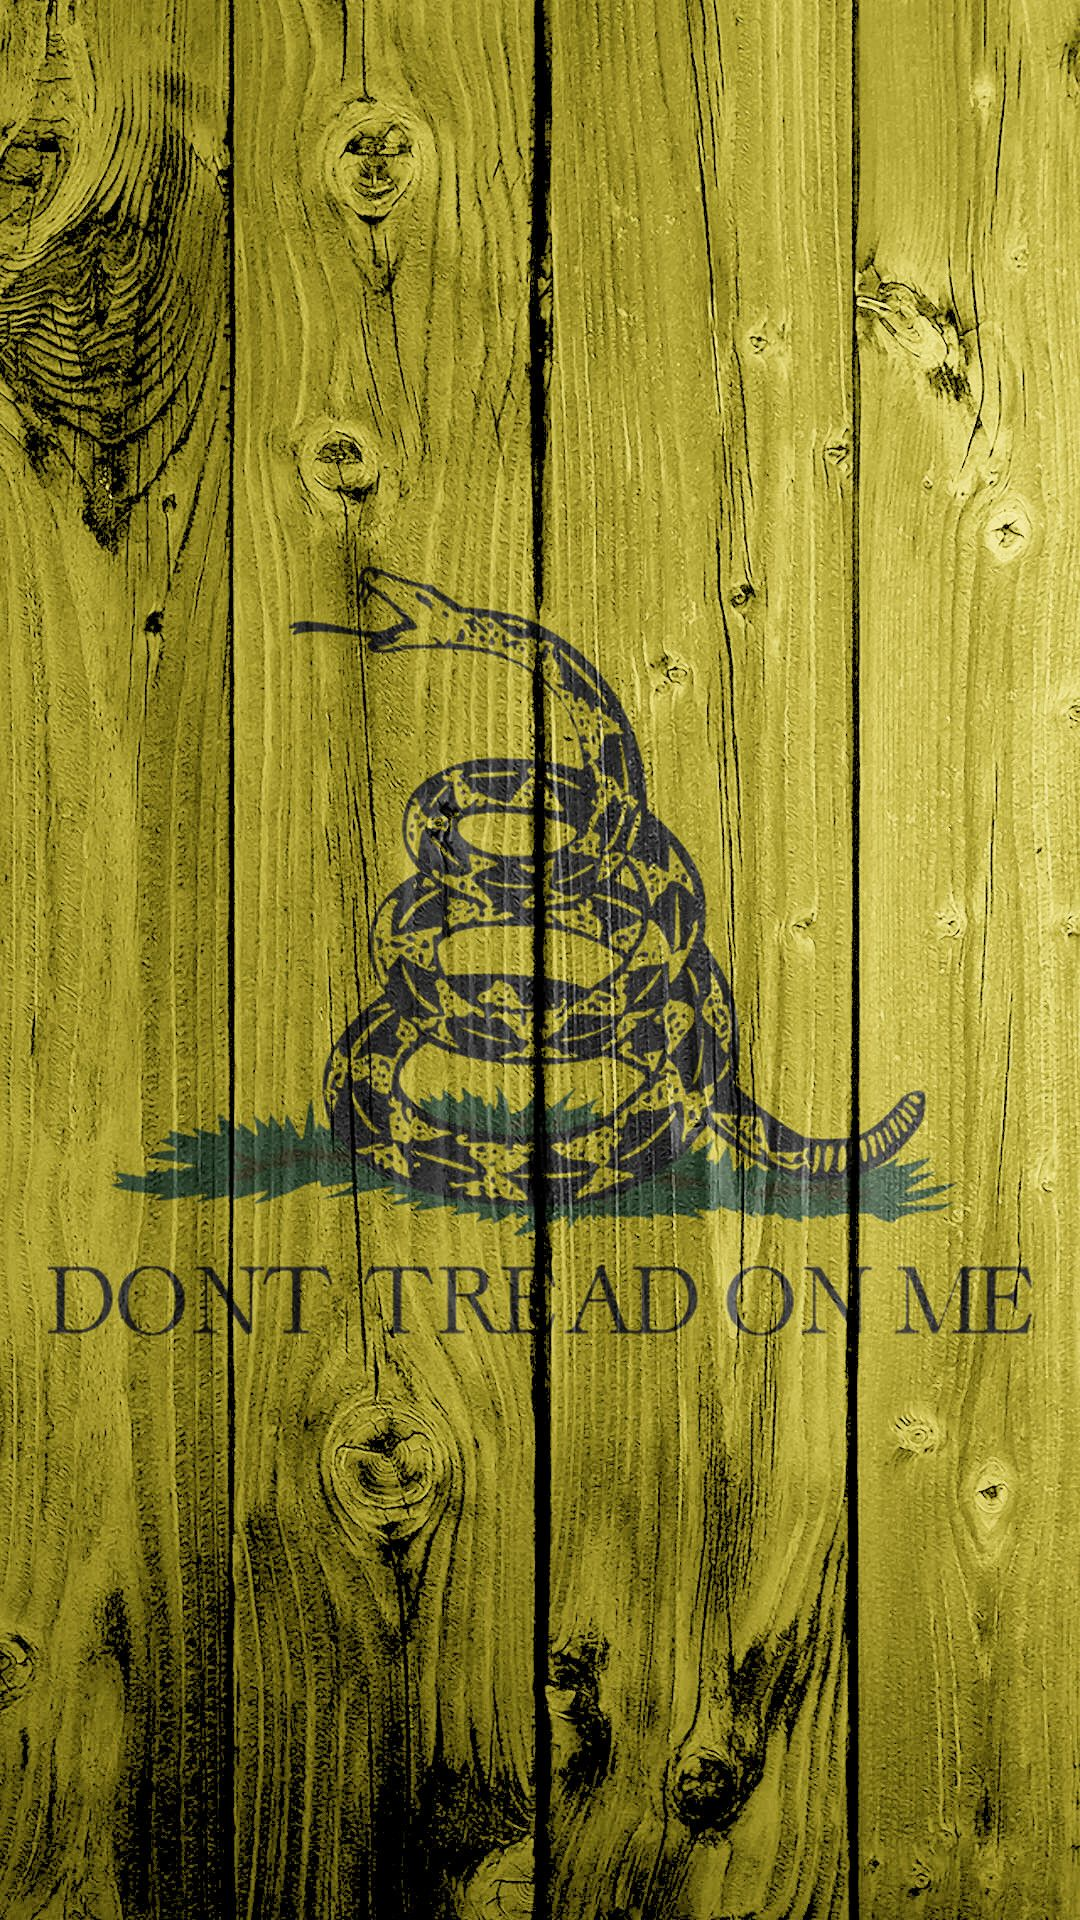 1080x1920 ... DON T TREAD ON ME 1080x1920 Flag Wallpaper by LoneStarPatriot 2182399c8c